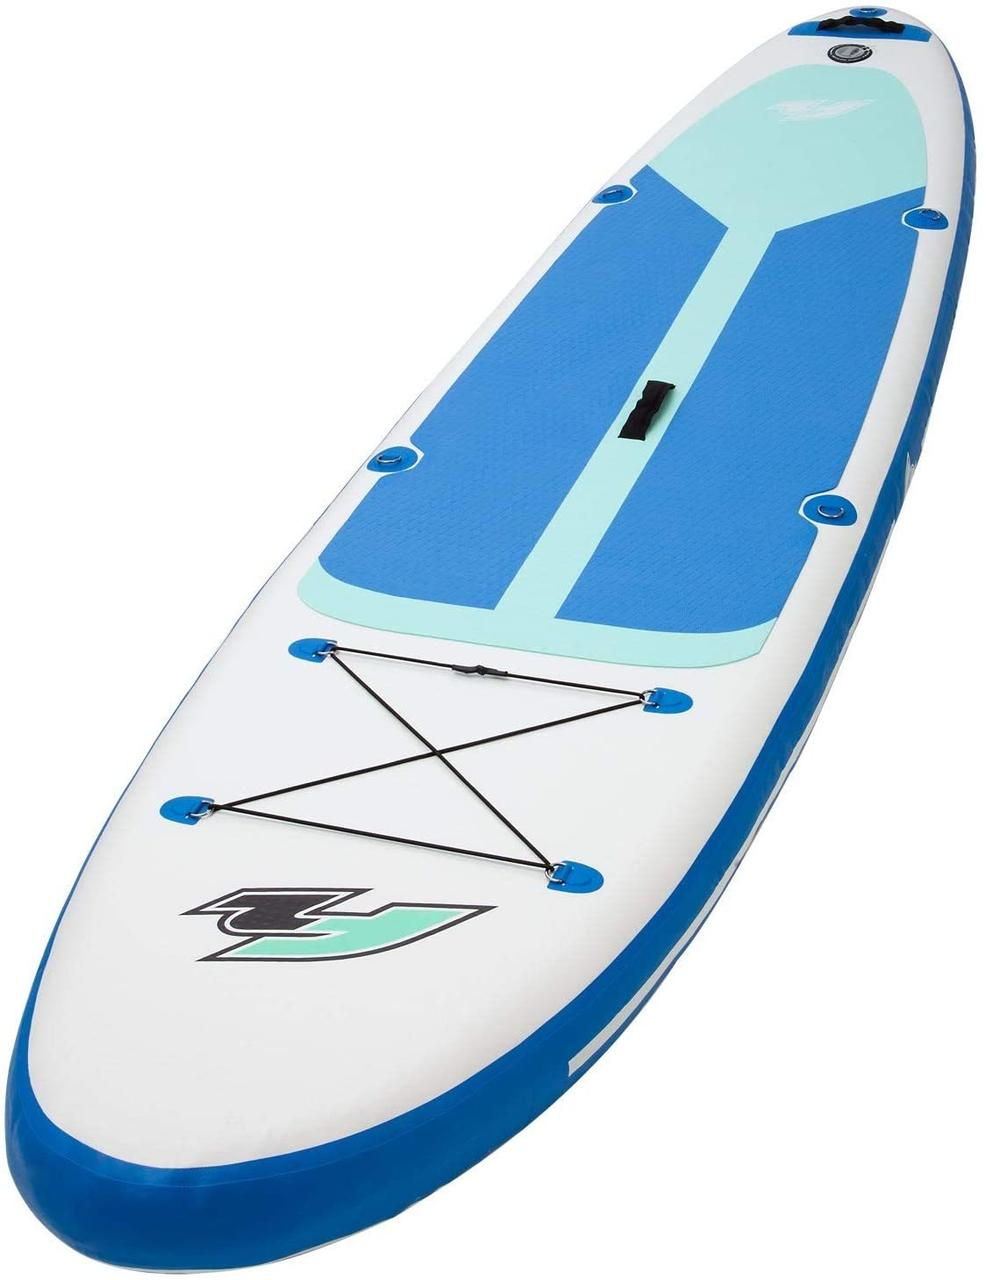 SUP-БОРД F2 STRATO 11.5